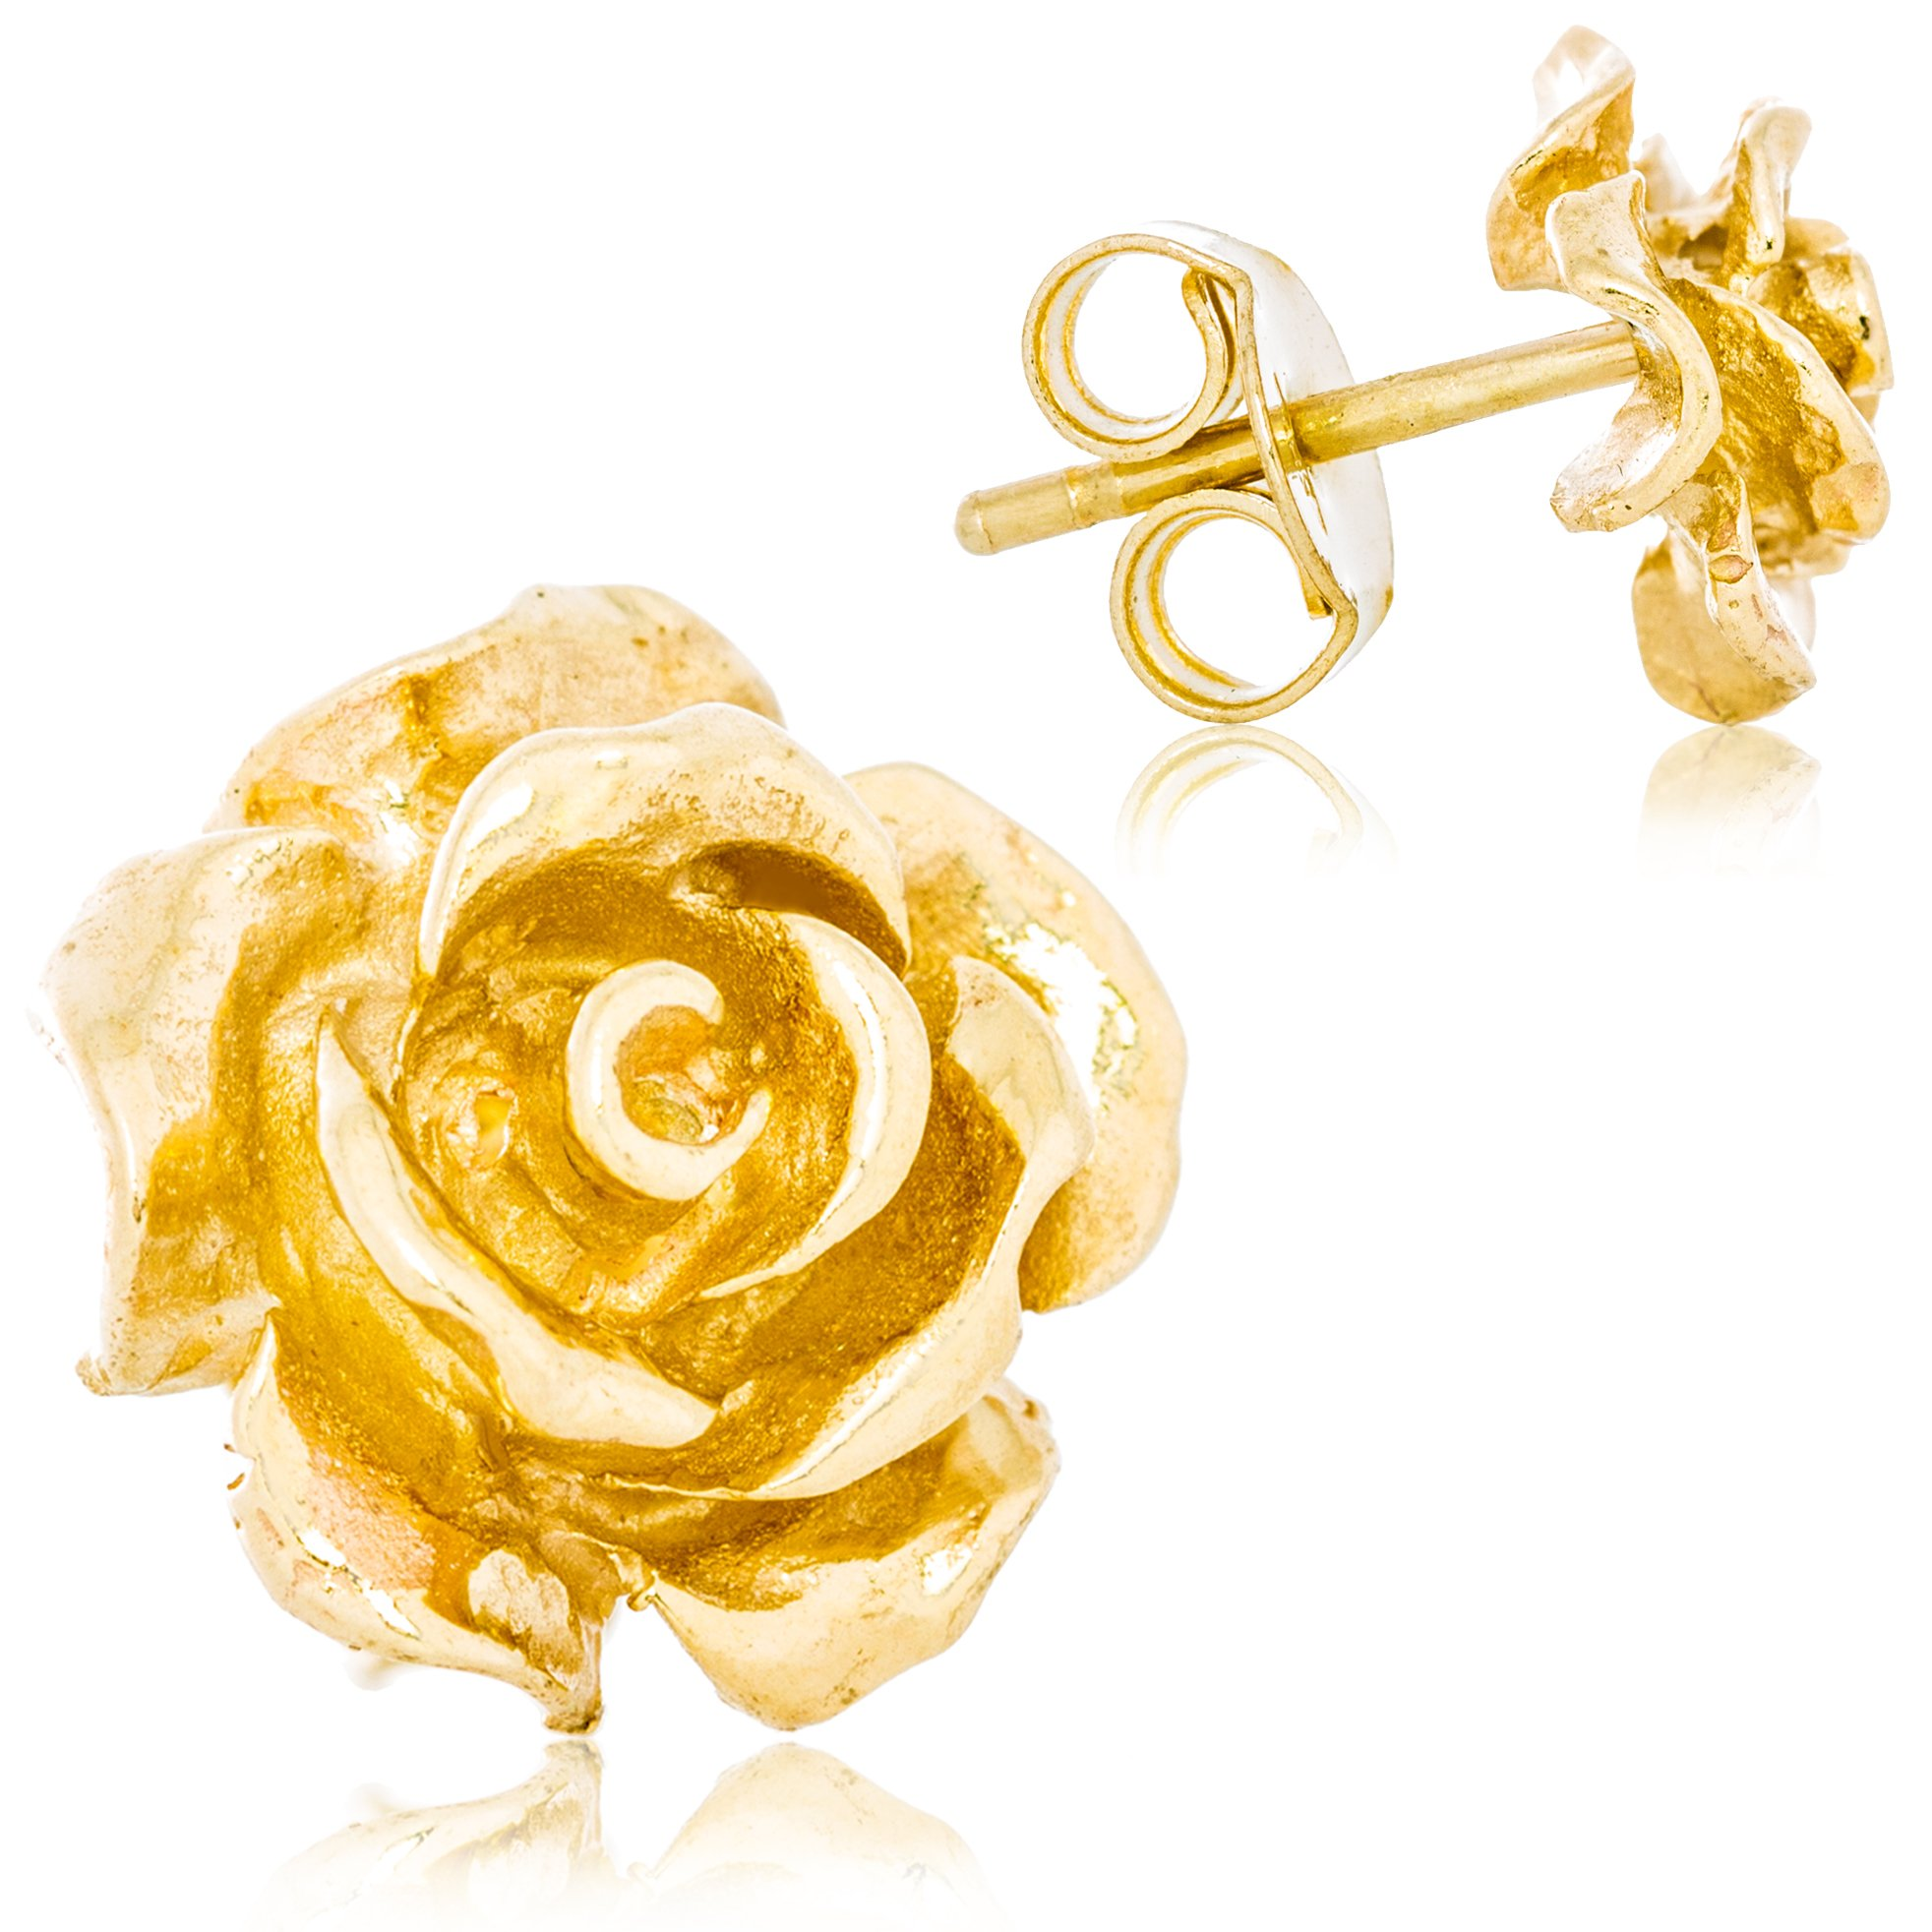 Solid Gold 14K Rose Flower Stud Earrings Handcrafted style 10mm with Post and Friction Back by Trusted Jewelers